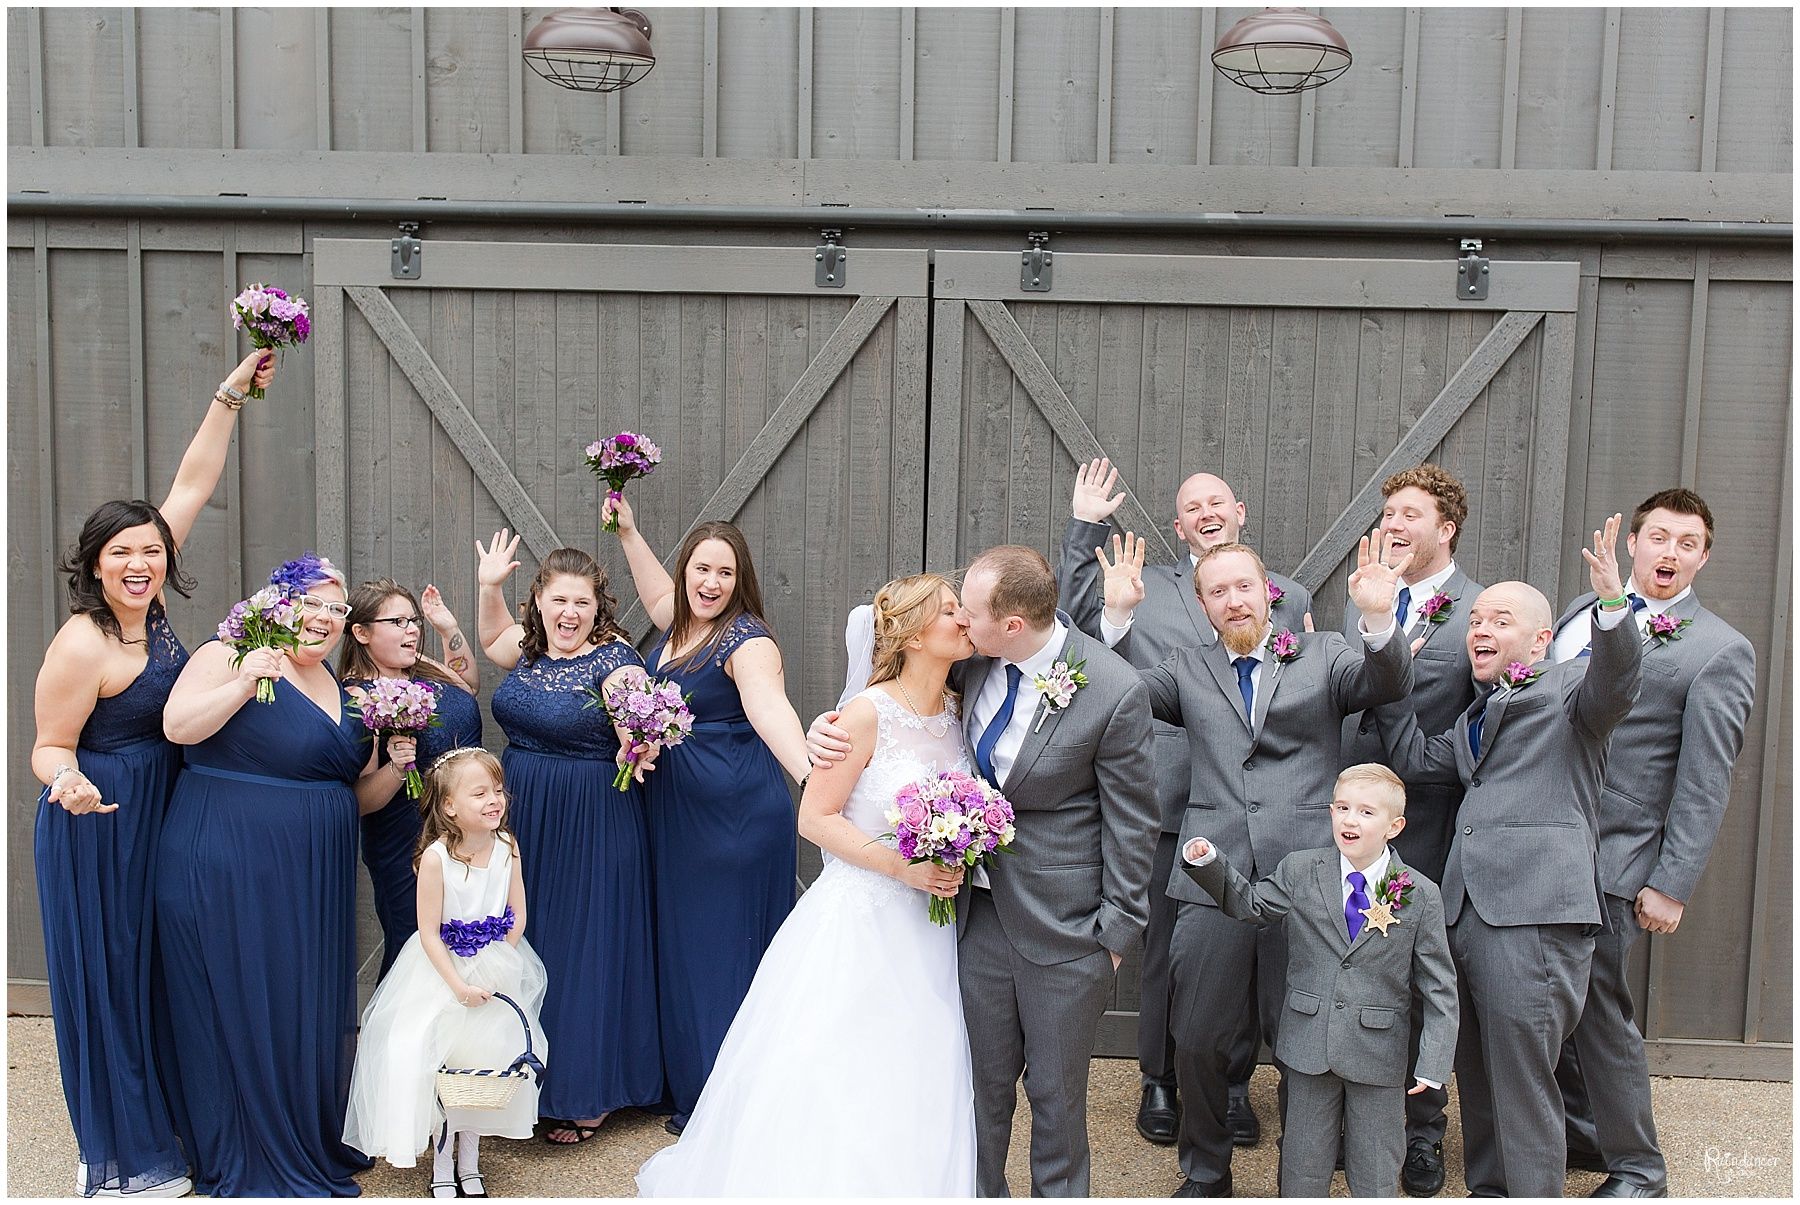 Bride, groom, and wedding party posing by Raindancer Studios Indianapolis Wedding Photographer Jill Howell